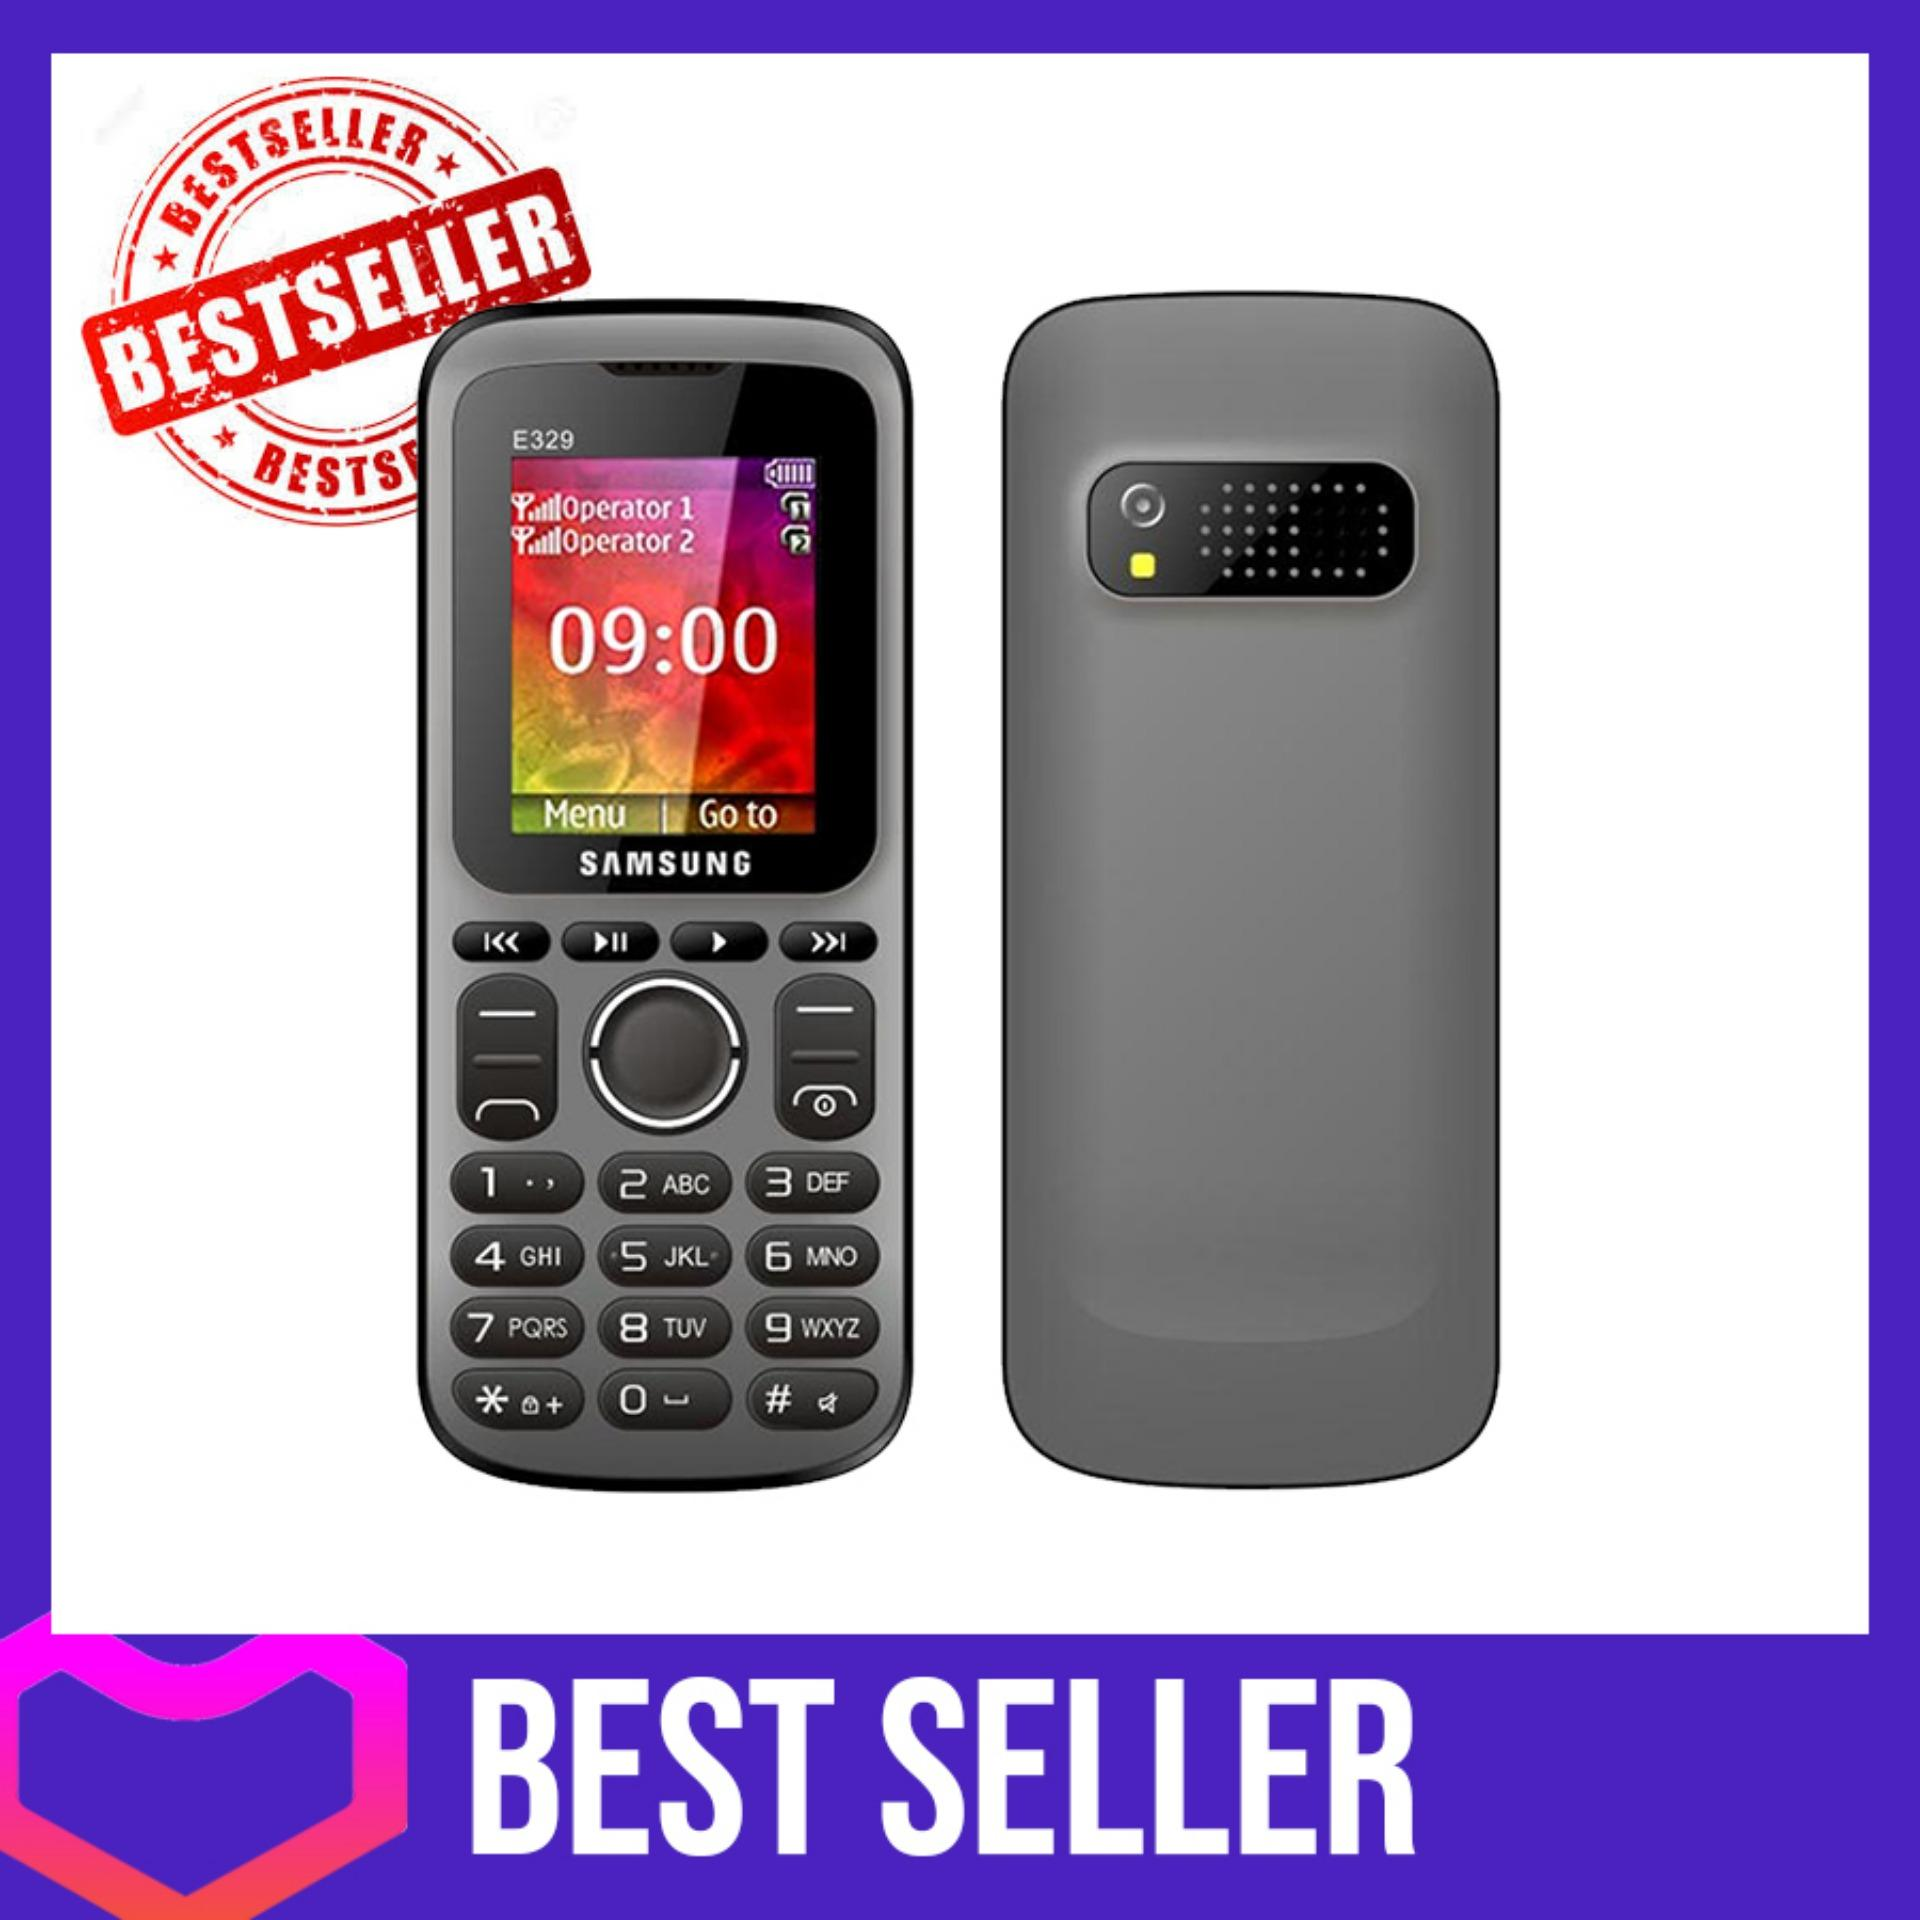 Samsung E329 Handy Compact Keypad Dual Sim Mobile Phone By Better Goods.